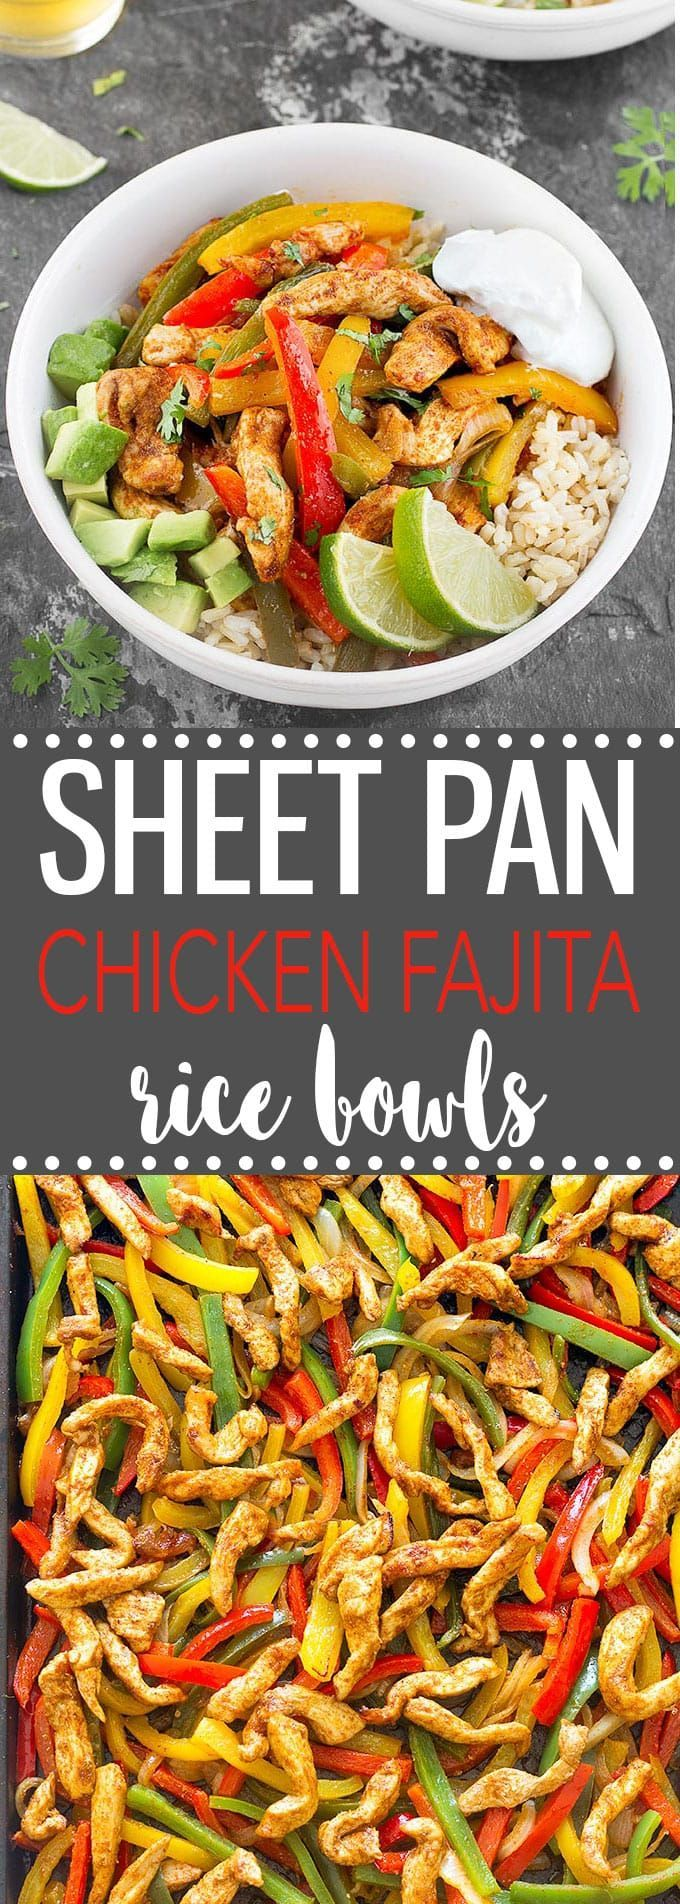 Sheet Pan Chicken Fajita Rice Bowls-  A quick, simple and mouthwatering weeknight dinner that makes great leftovers!   via @easyasapplepie